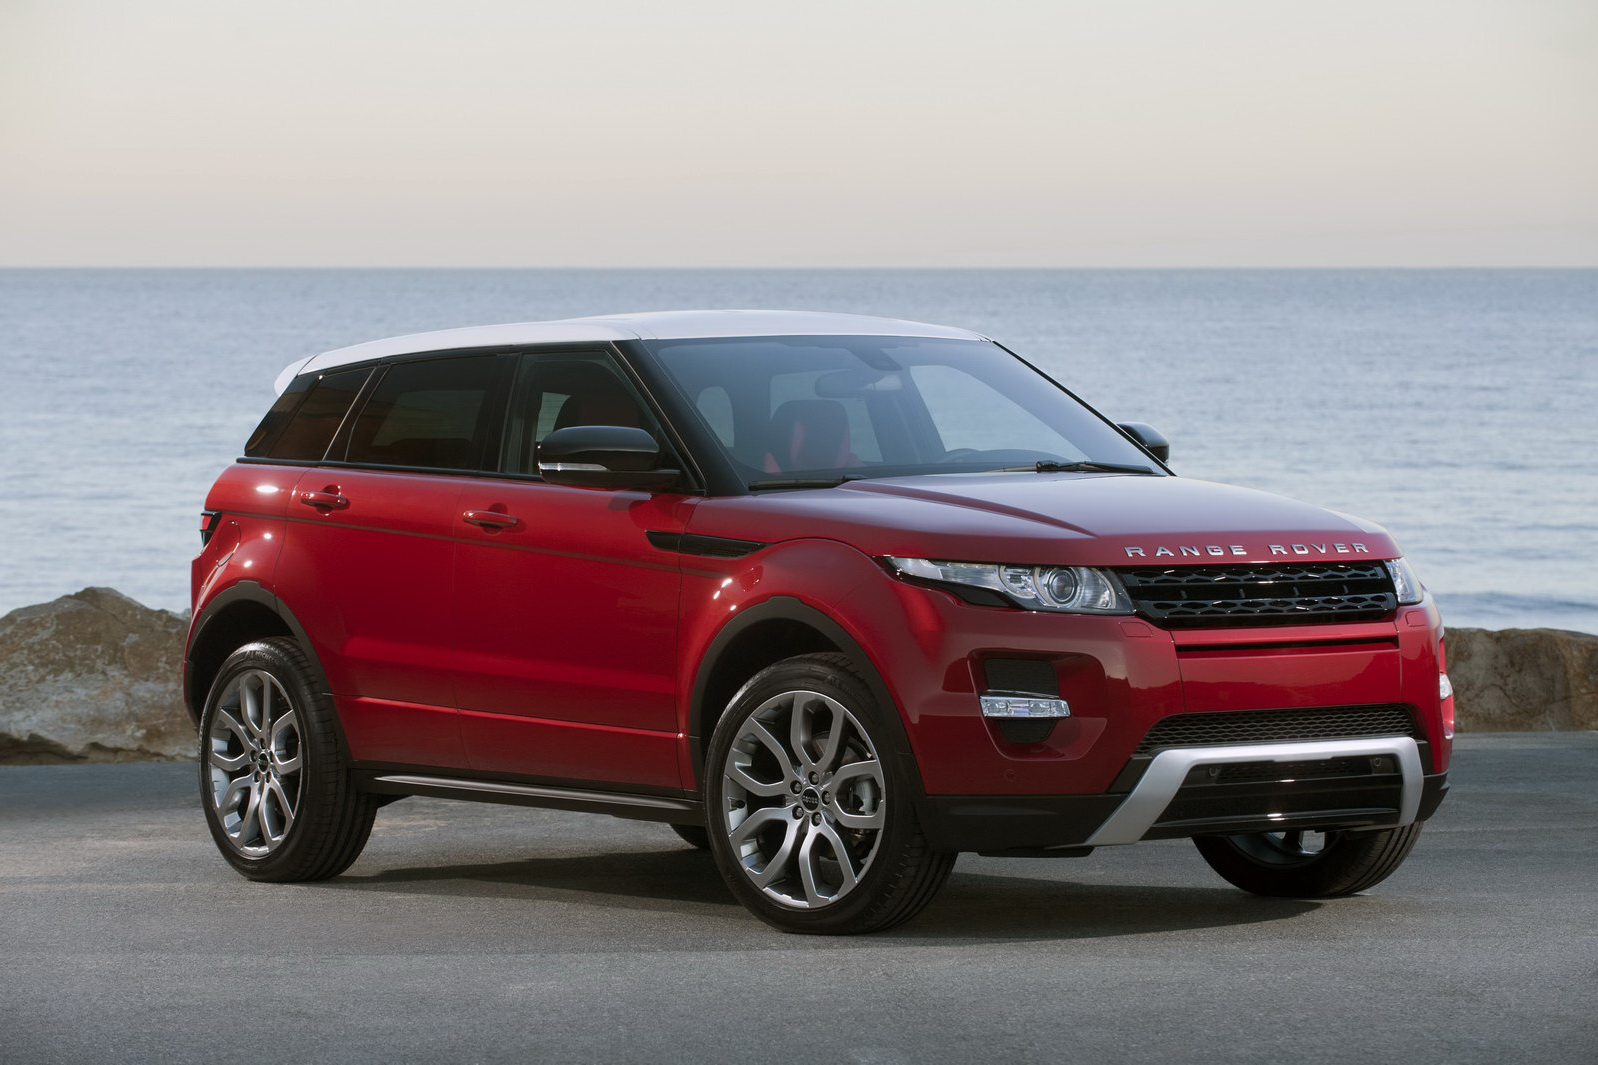 Land Rover Range Rover Evoque image editor free download